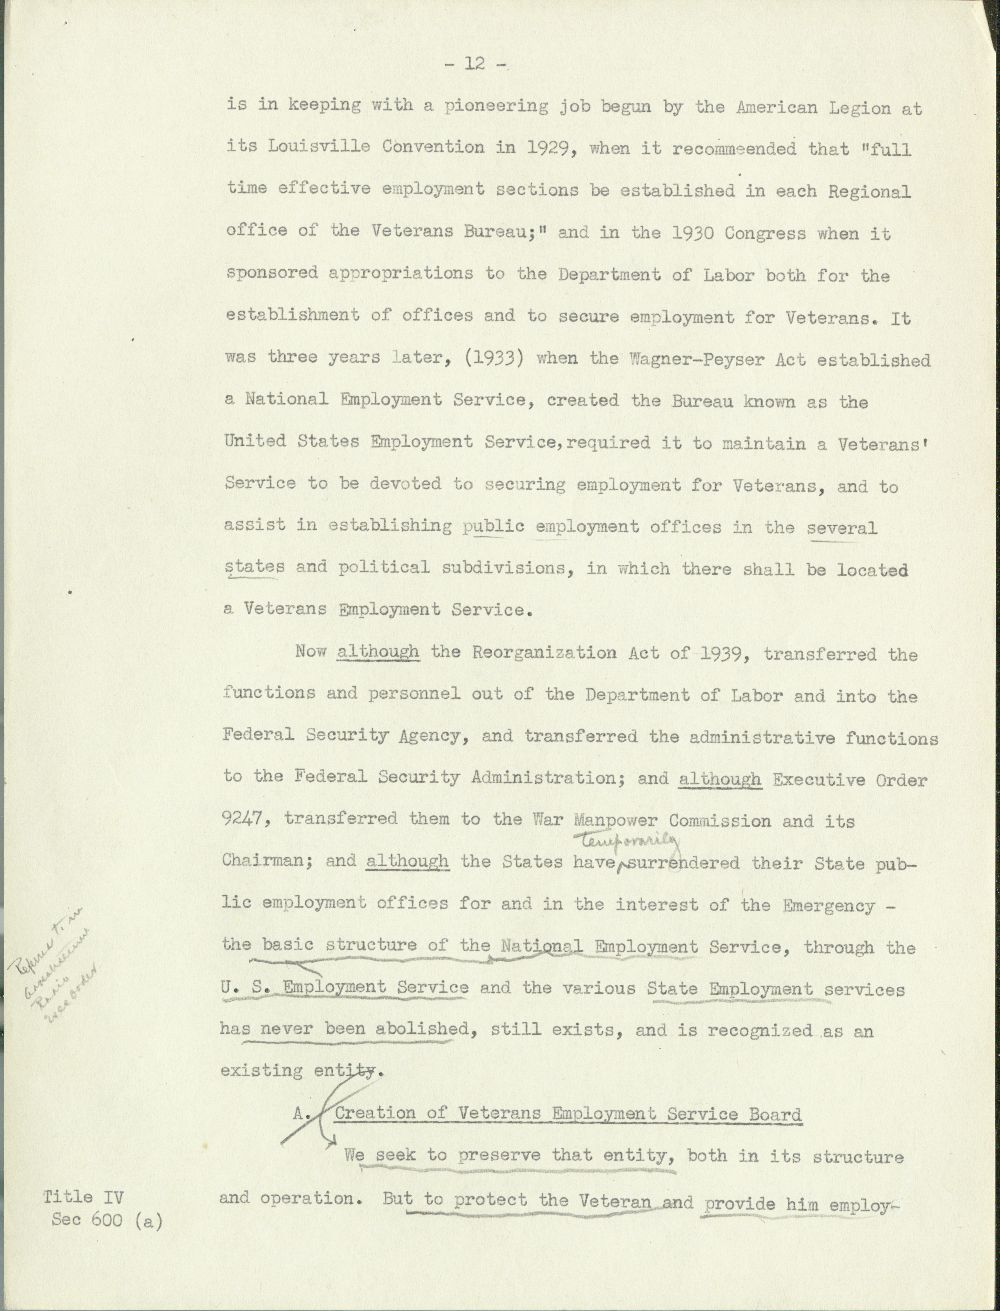 Testimony concerning the G. I. Bill of Rights presented by Harry W. Colmery - 12